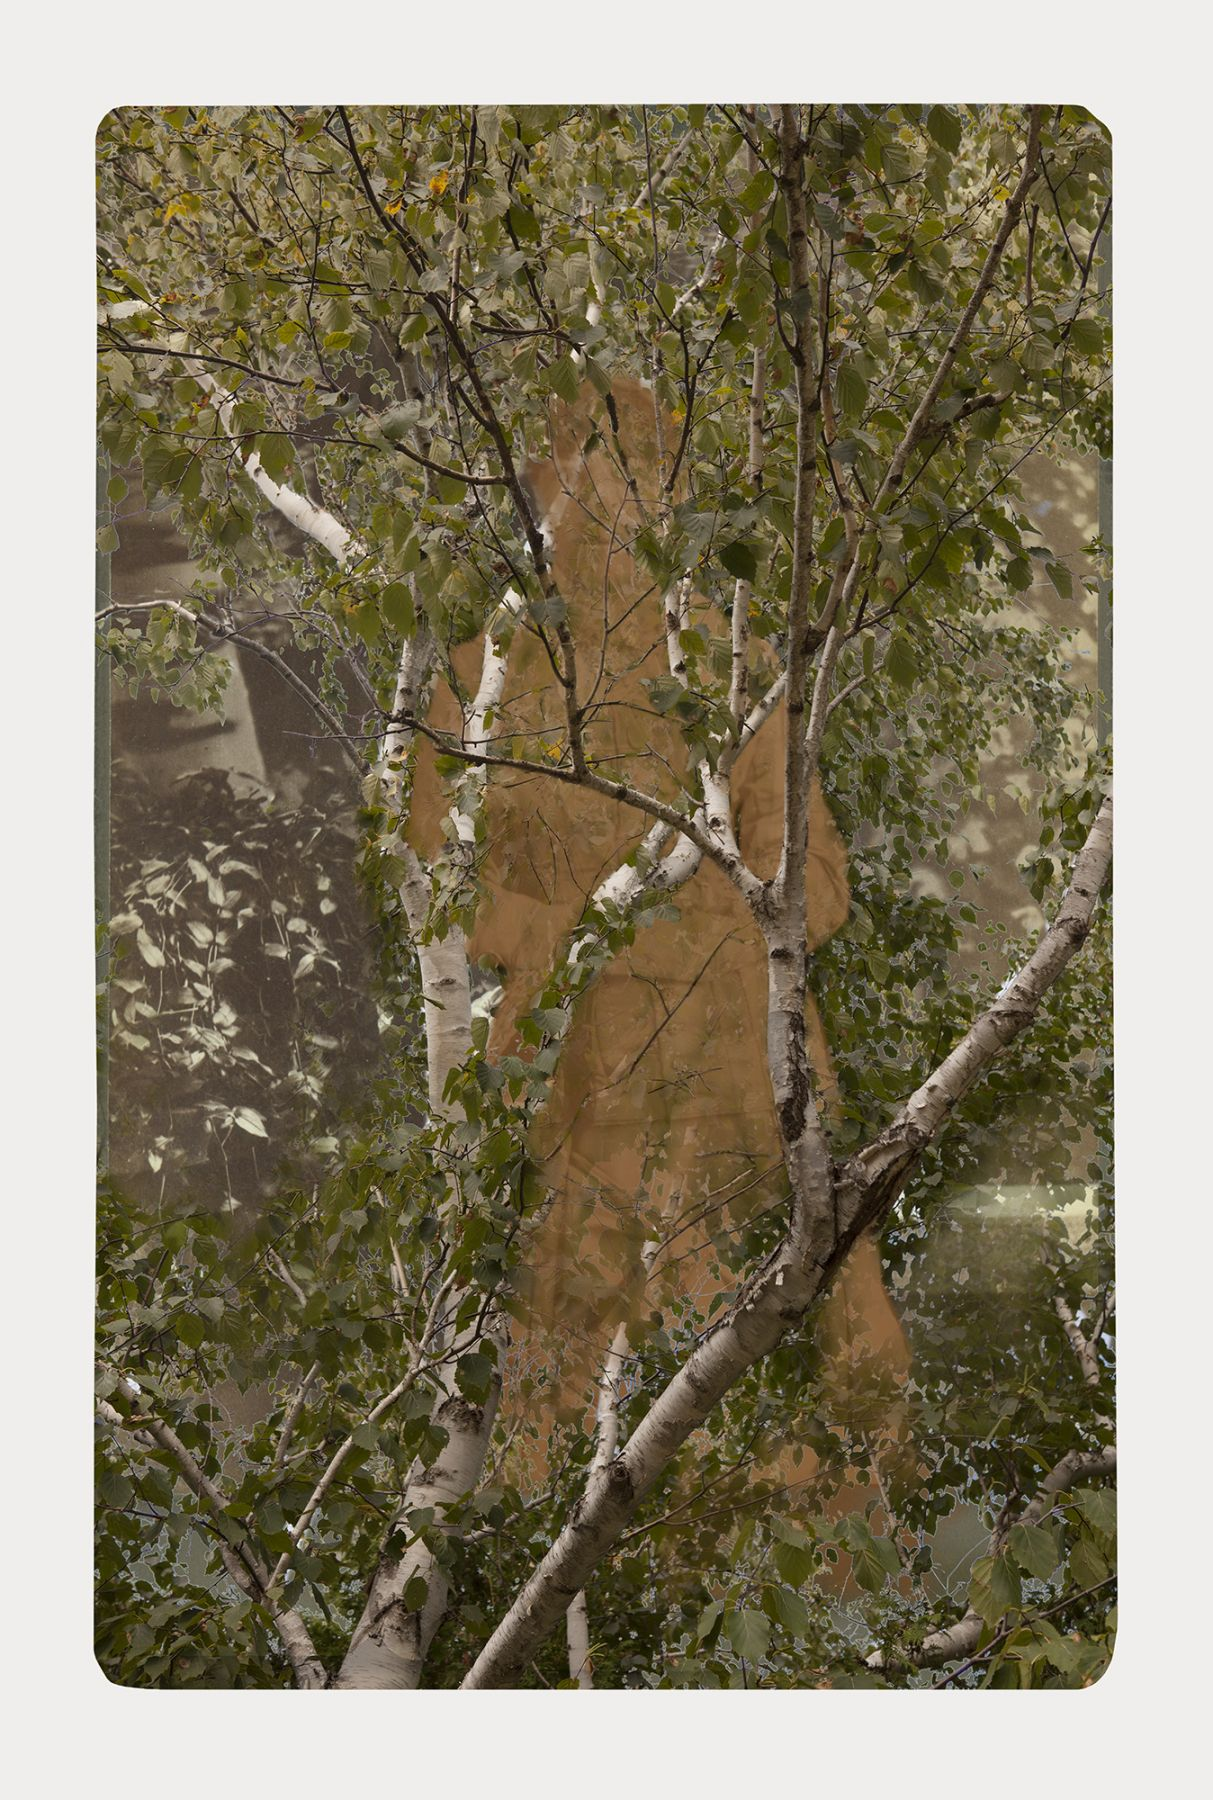 SARA ANGELUCCI | ARBORETUM (WOMAN/WHITE BIRCH) | PIGMENT PRINT ON ARCHIVAL PAPER | 24 X 34 INCHES | 2016